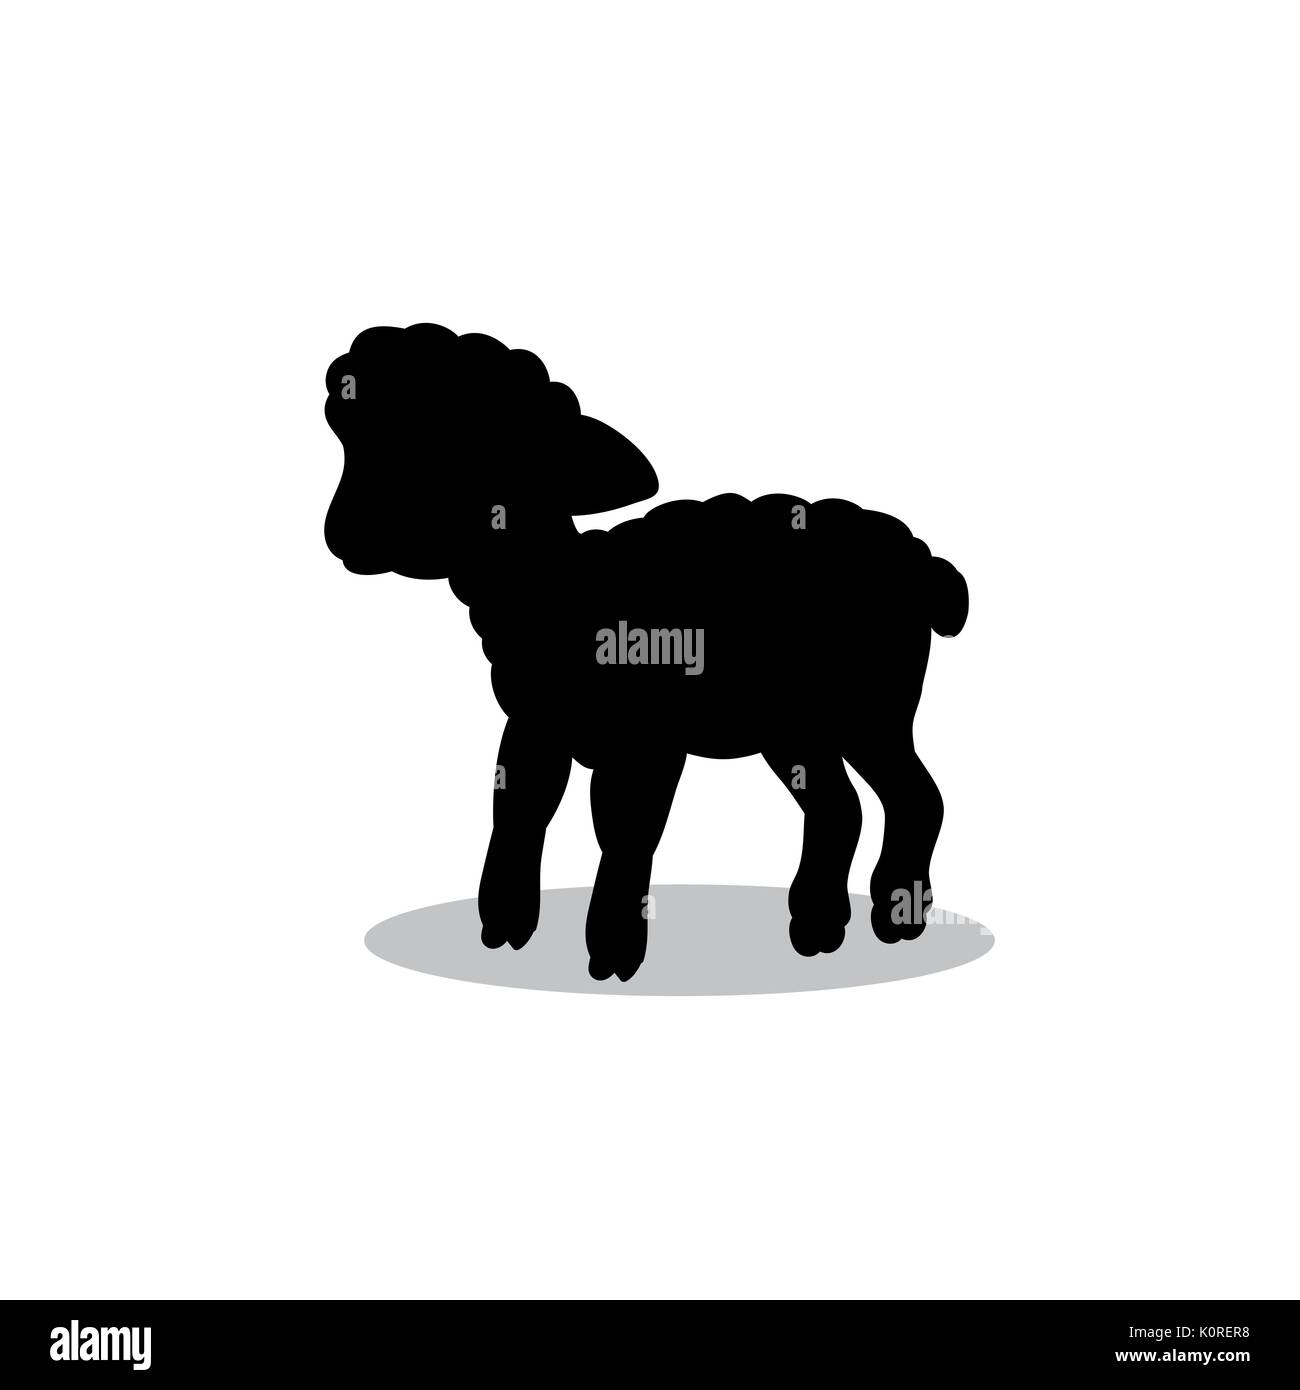 Lamb Silhouette Stock Photos & Lamb Silhouette Stock ...